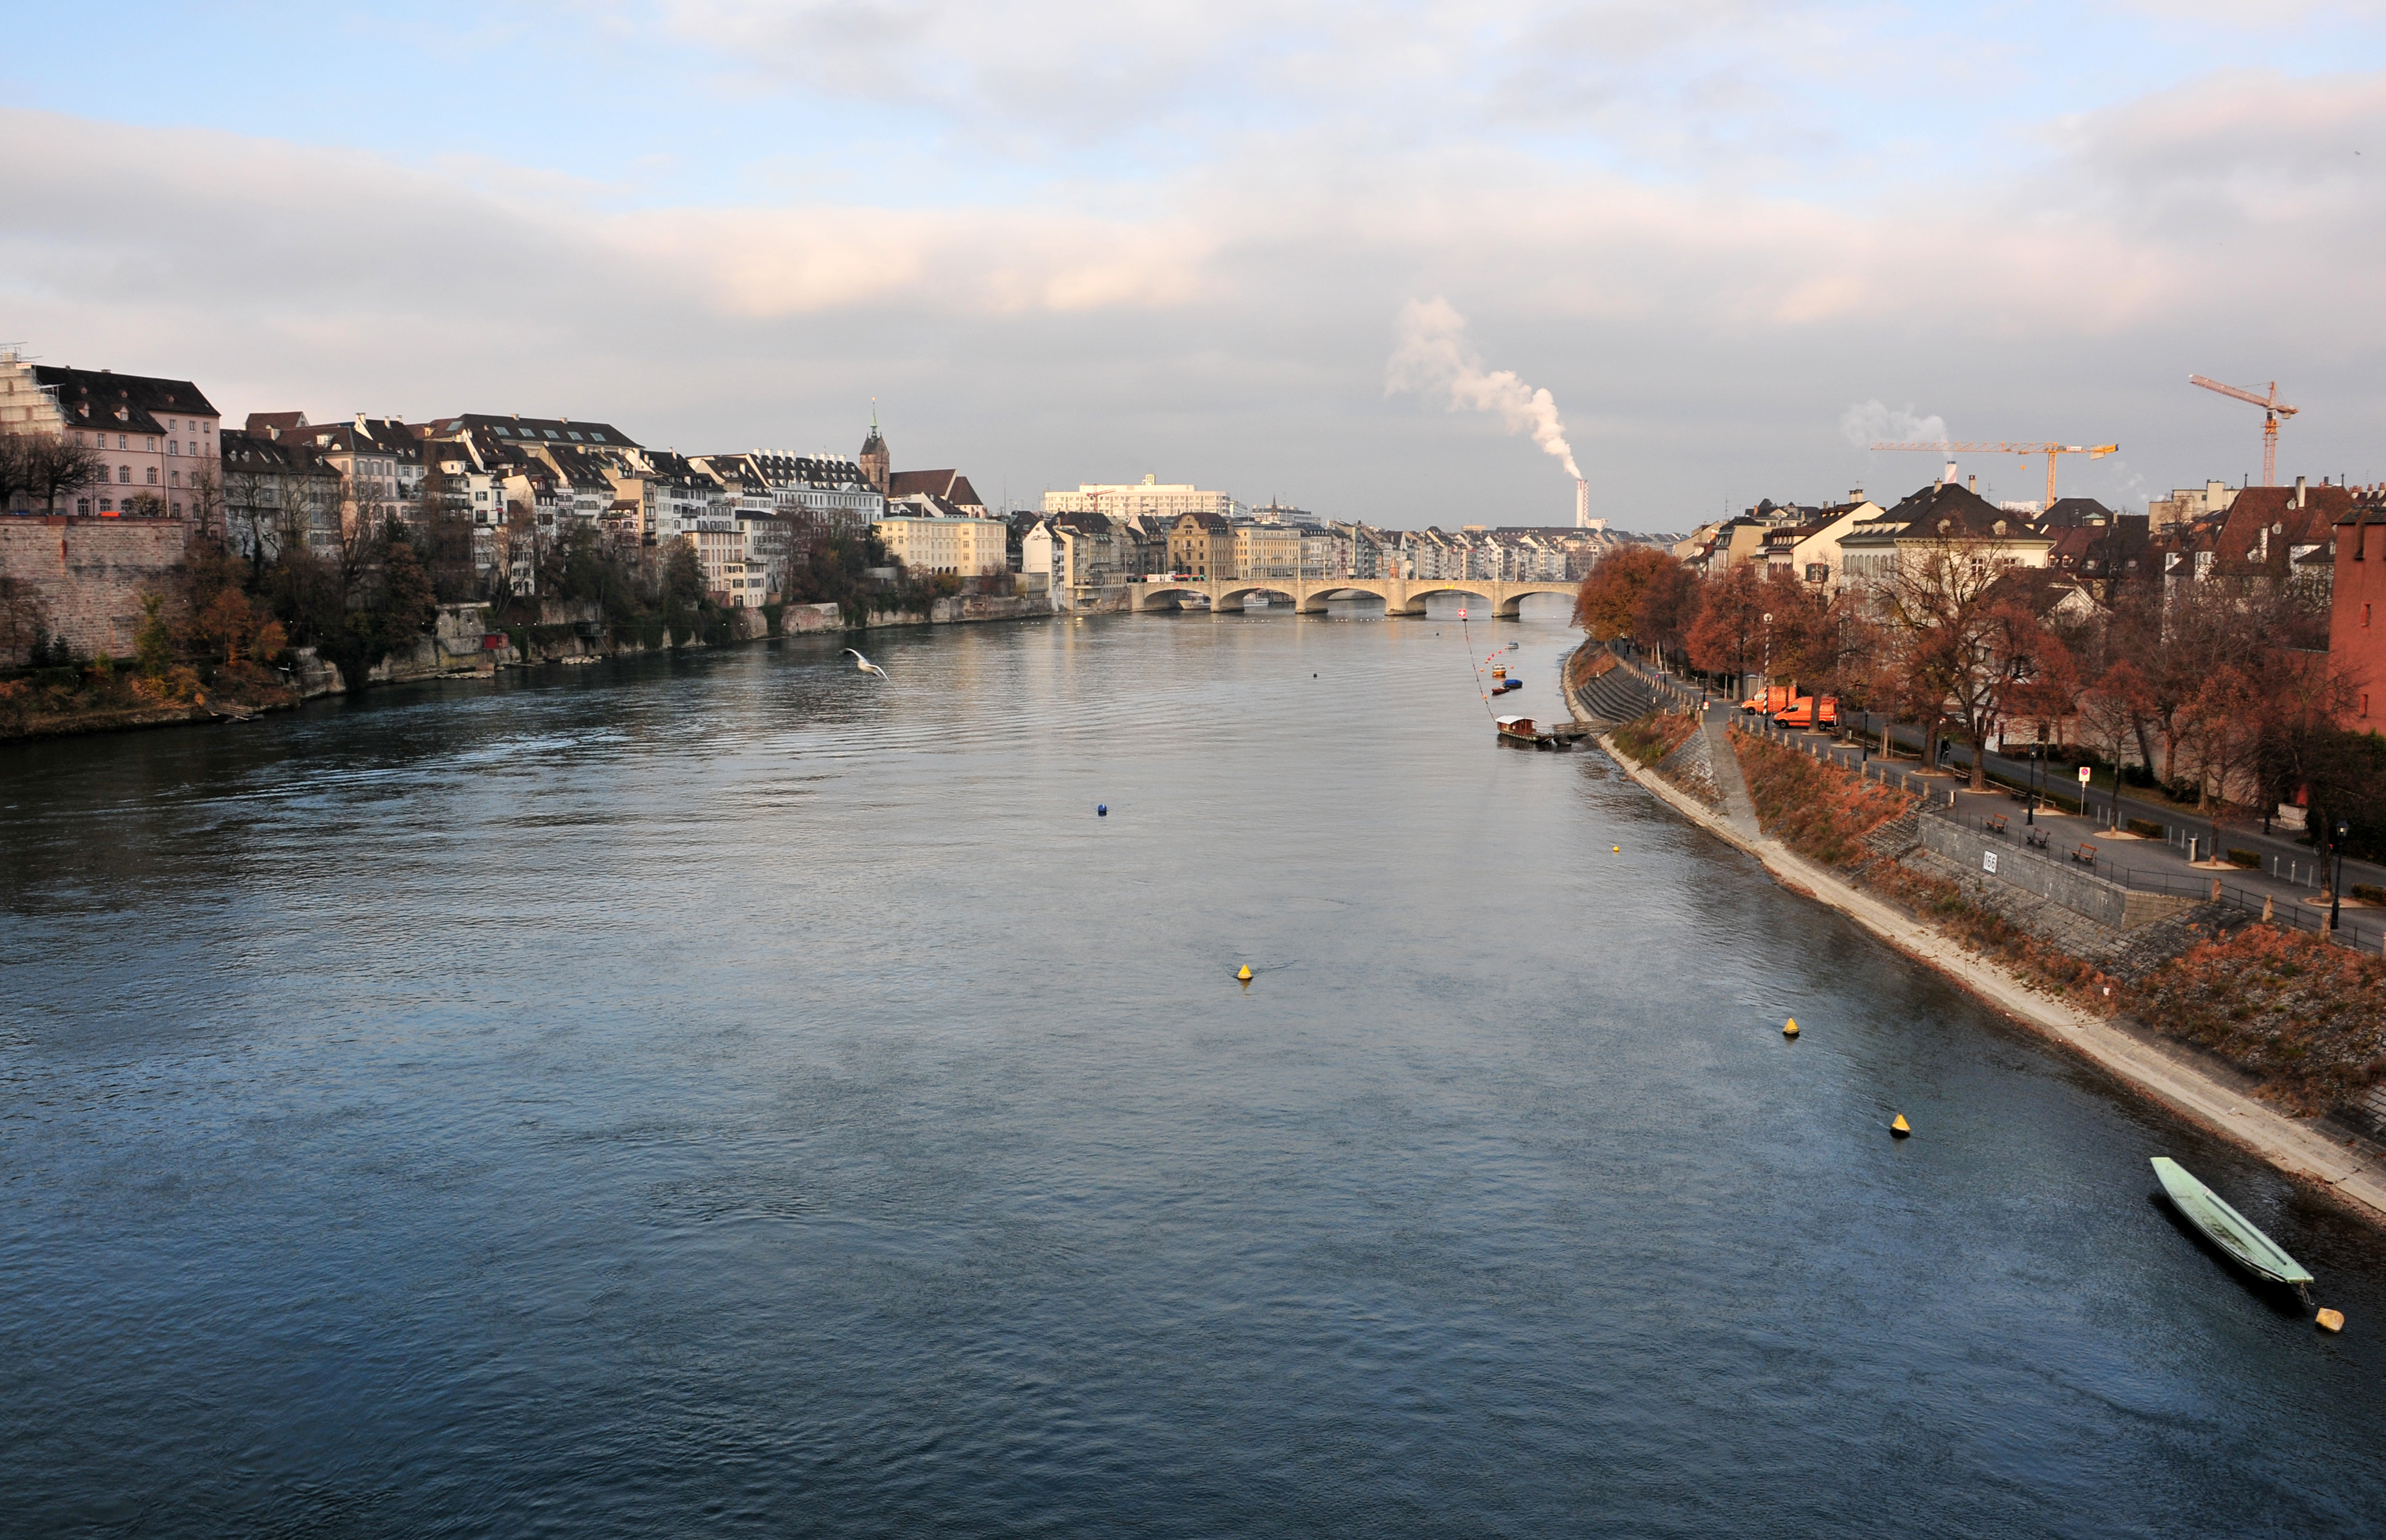 11-11-24-basel-by-ralfr-041